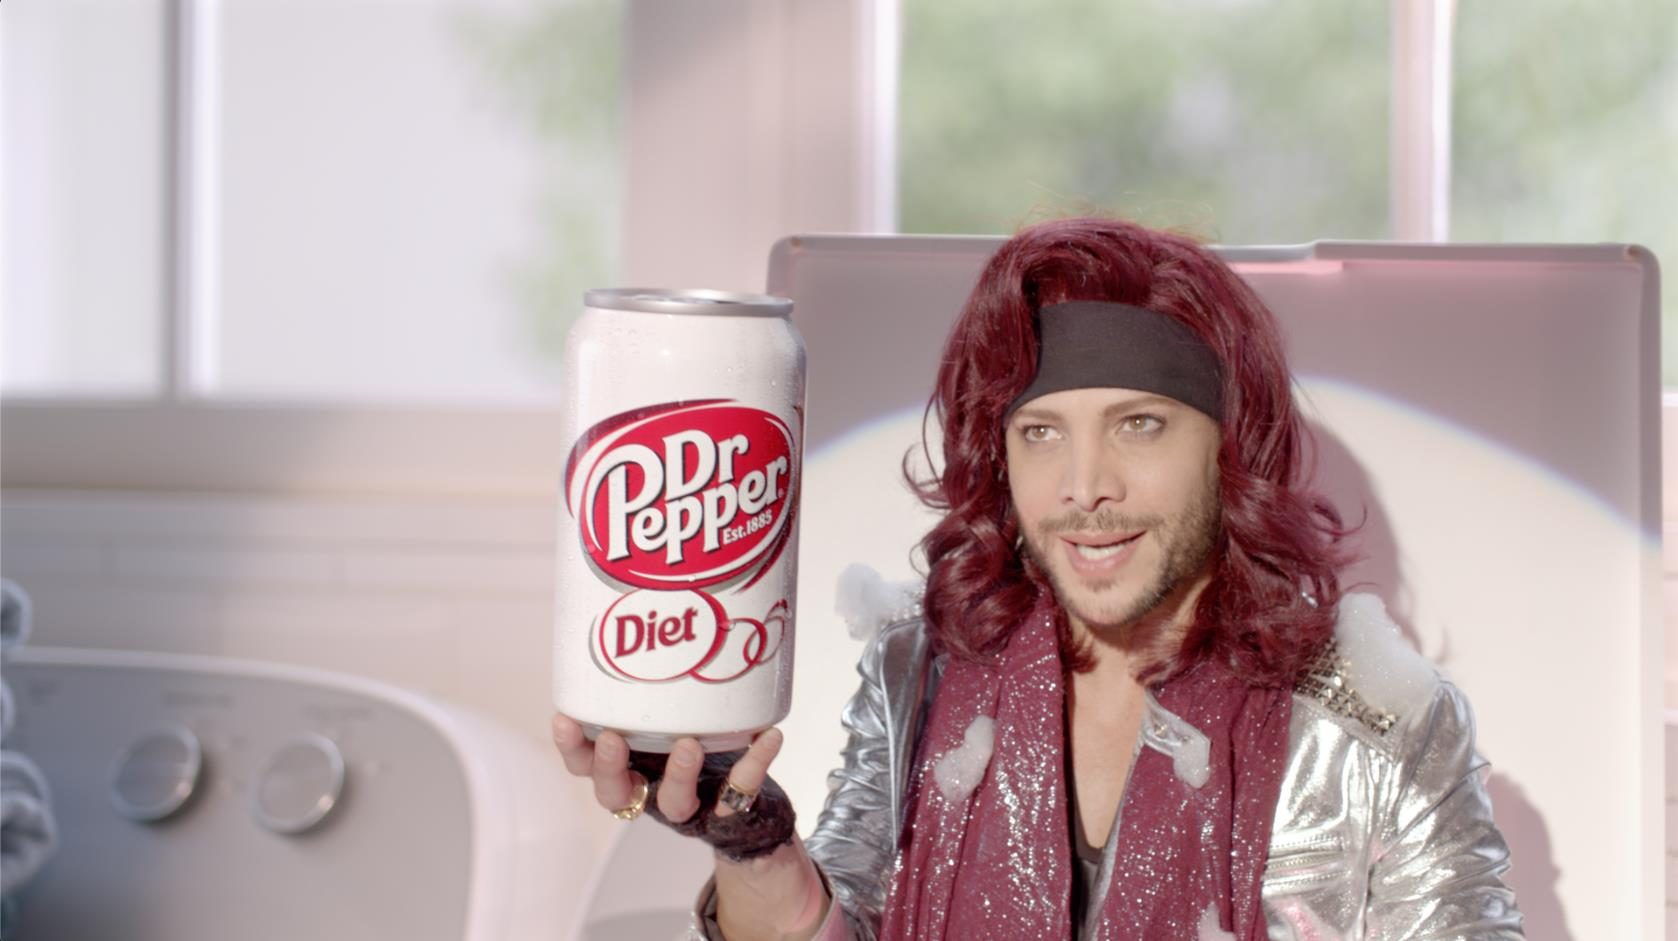 Diet Dr Pepper: Lil